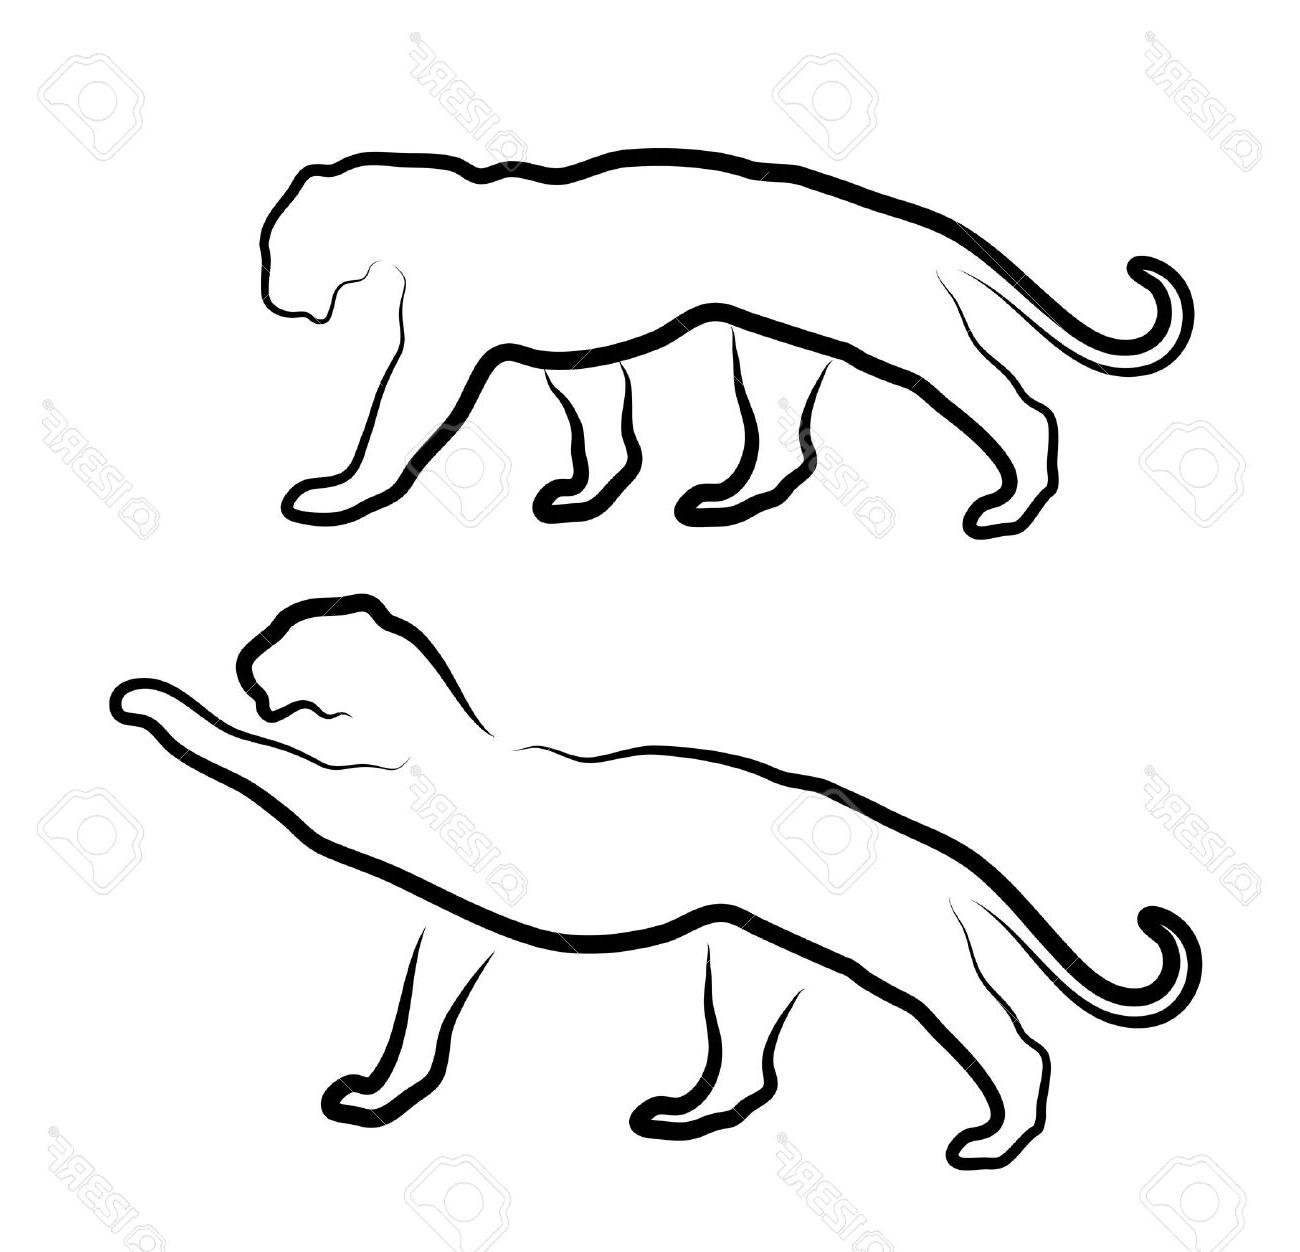 1300x1252 Best 15 Cat Silhouette On White Background Stock Vector Panther